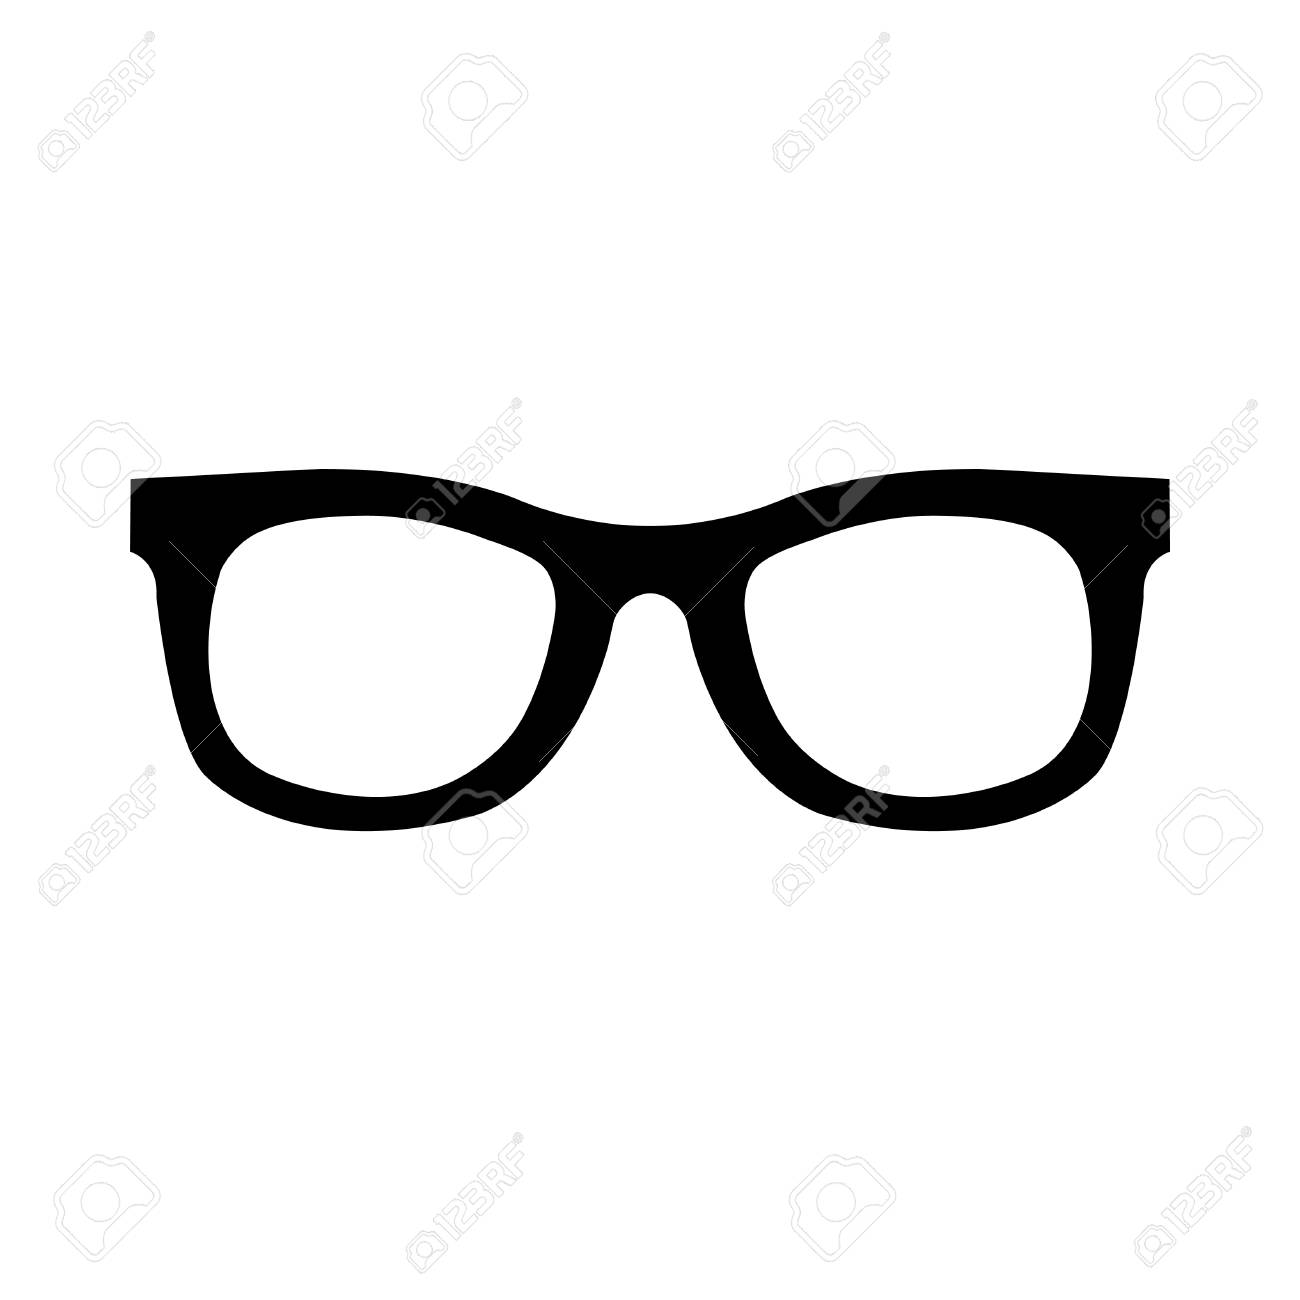 glasses vector icon royalty free cliparts vectors and stock rh 123rf com glasses factory blaydon glasses factory outlet